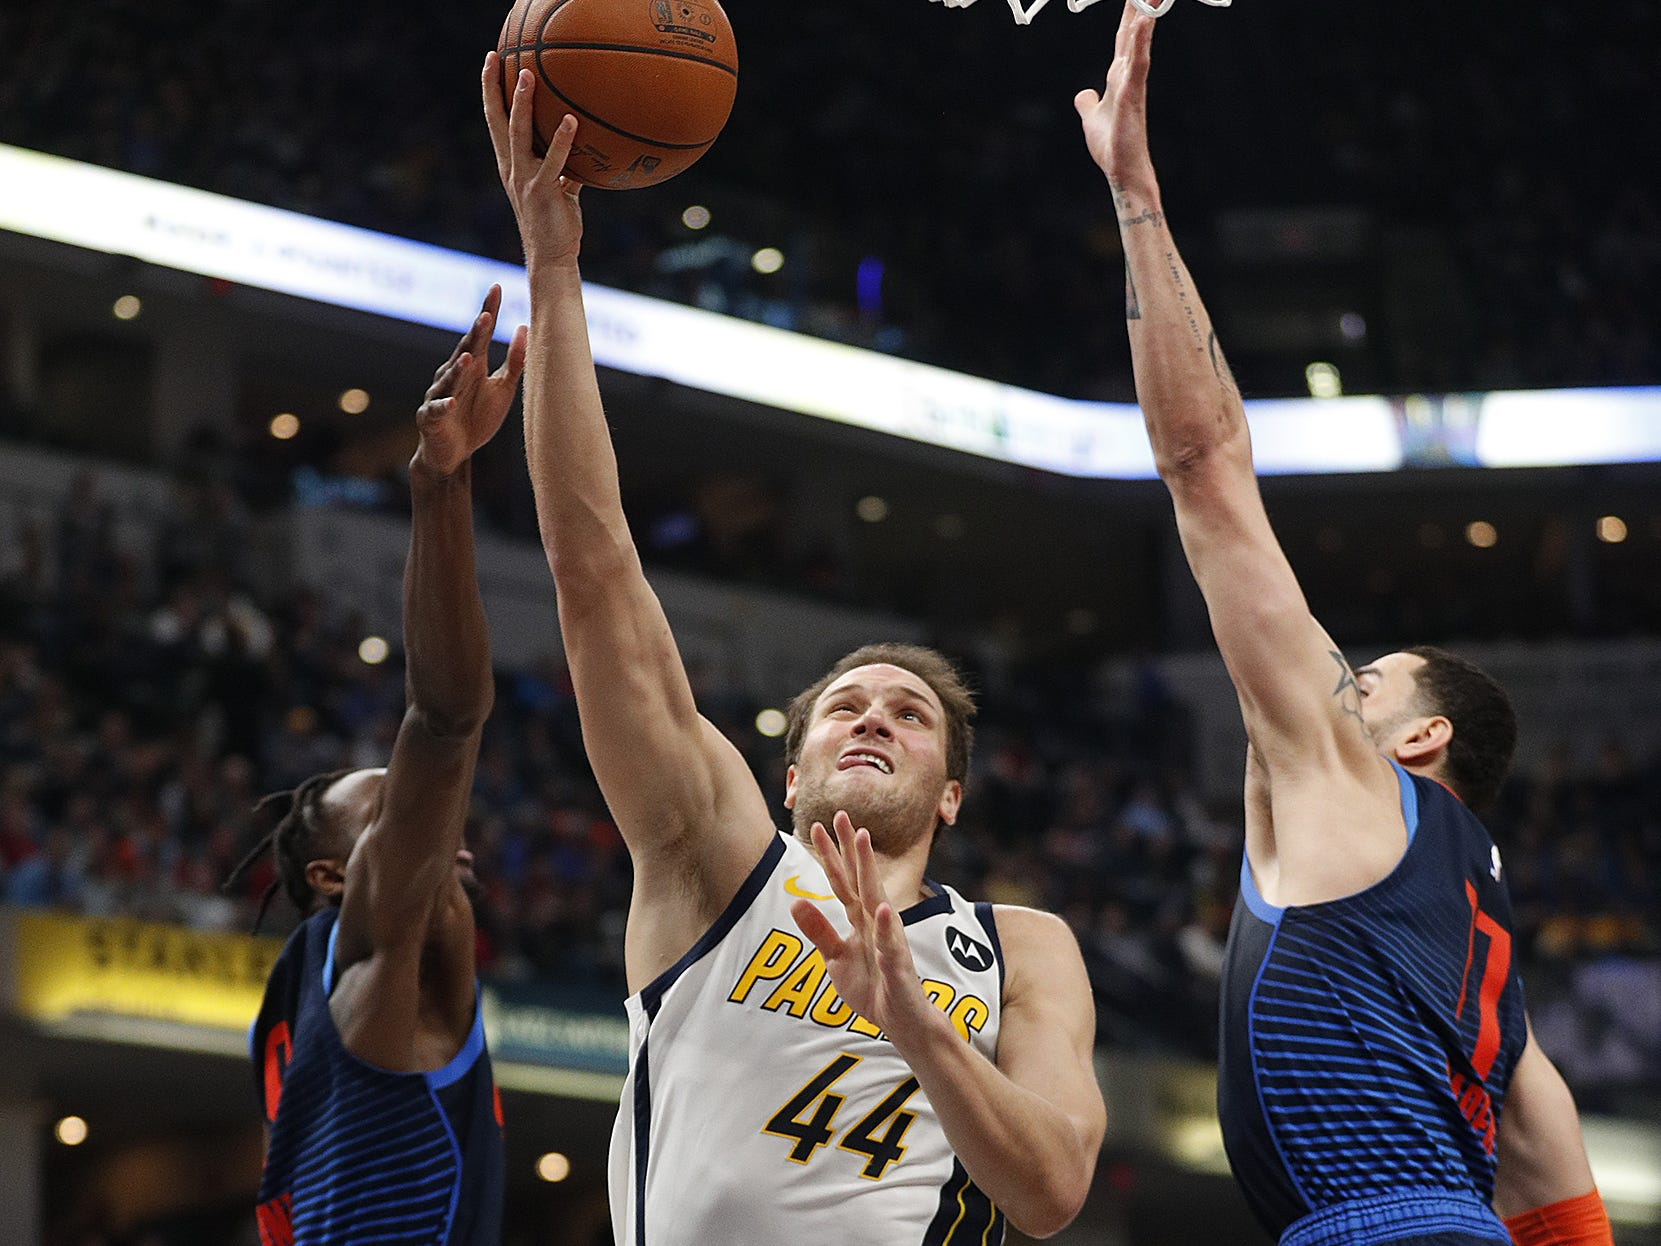 Indiana Pacers forward Bojan Bogdanovic (44) drives by Oklahoma City Thunder forward Abdel Nader (11) in the first half of their game at Bankers Life Fieldhouse on Thursday, Mar. 14, 2019.